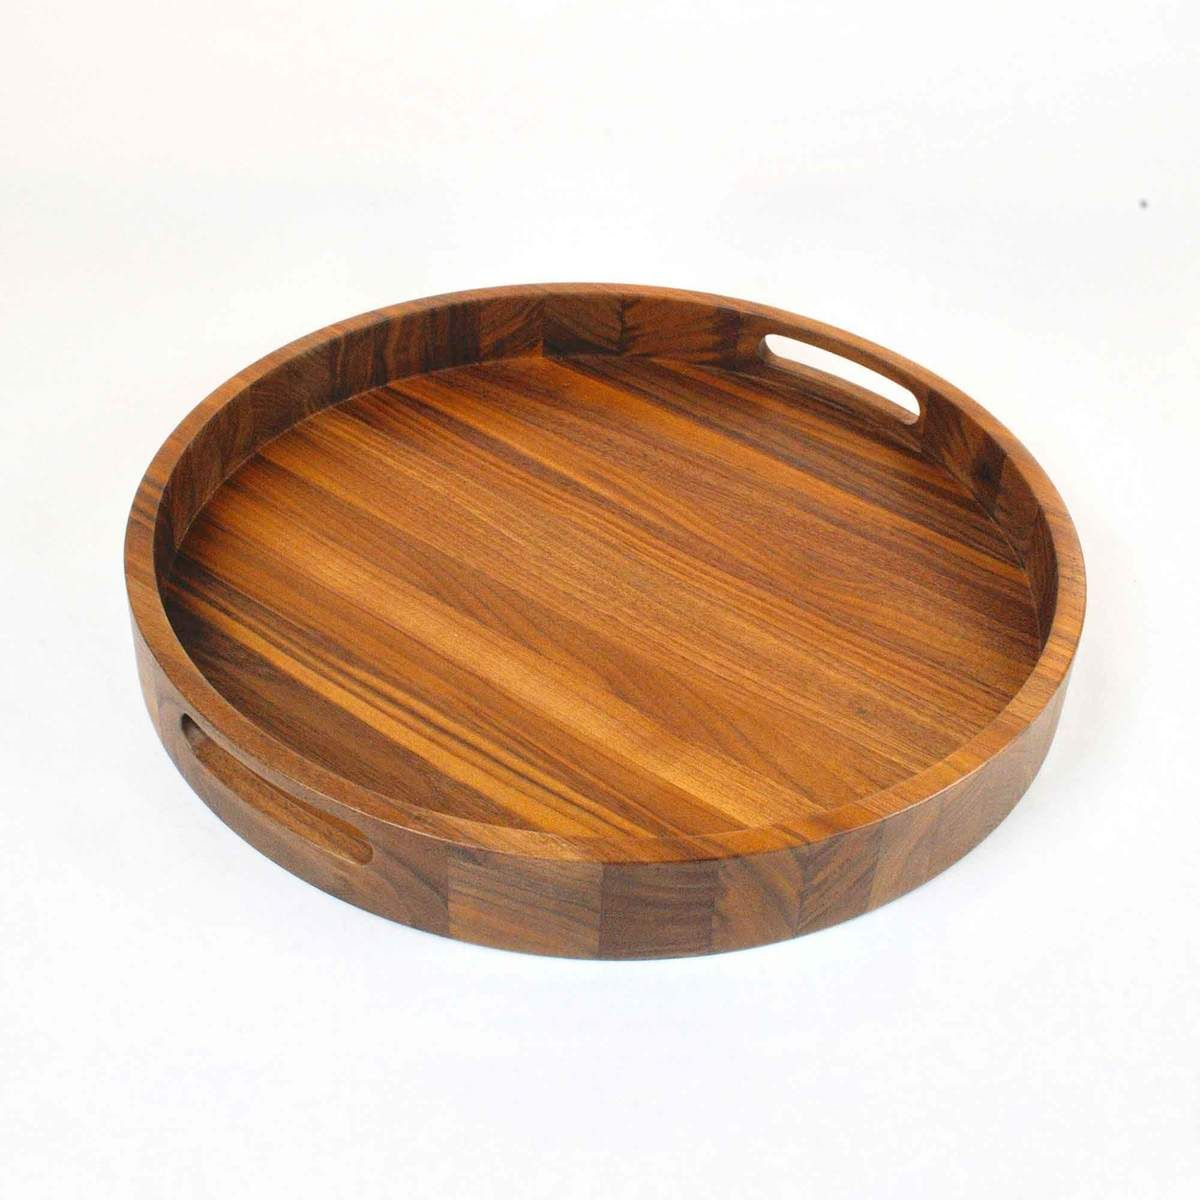 16 5 Inch Round Walnut Wood Serving And Coffee Table Tray With Handles Serving Tray Wood Wood Platter Serving Trays With Handles [ 1200 x 1200 Pixel ]